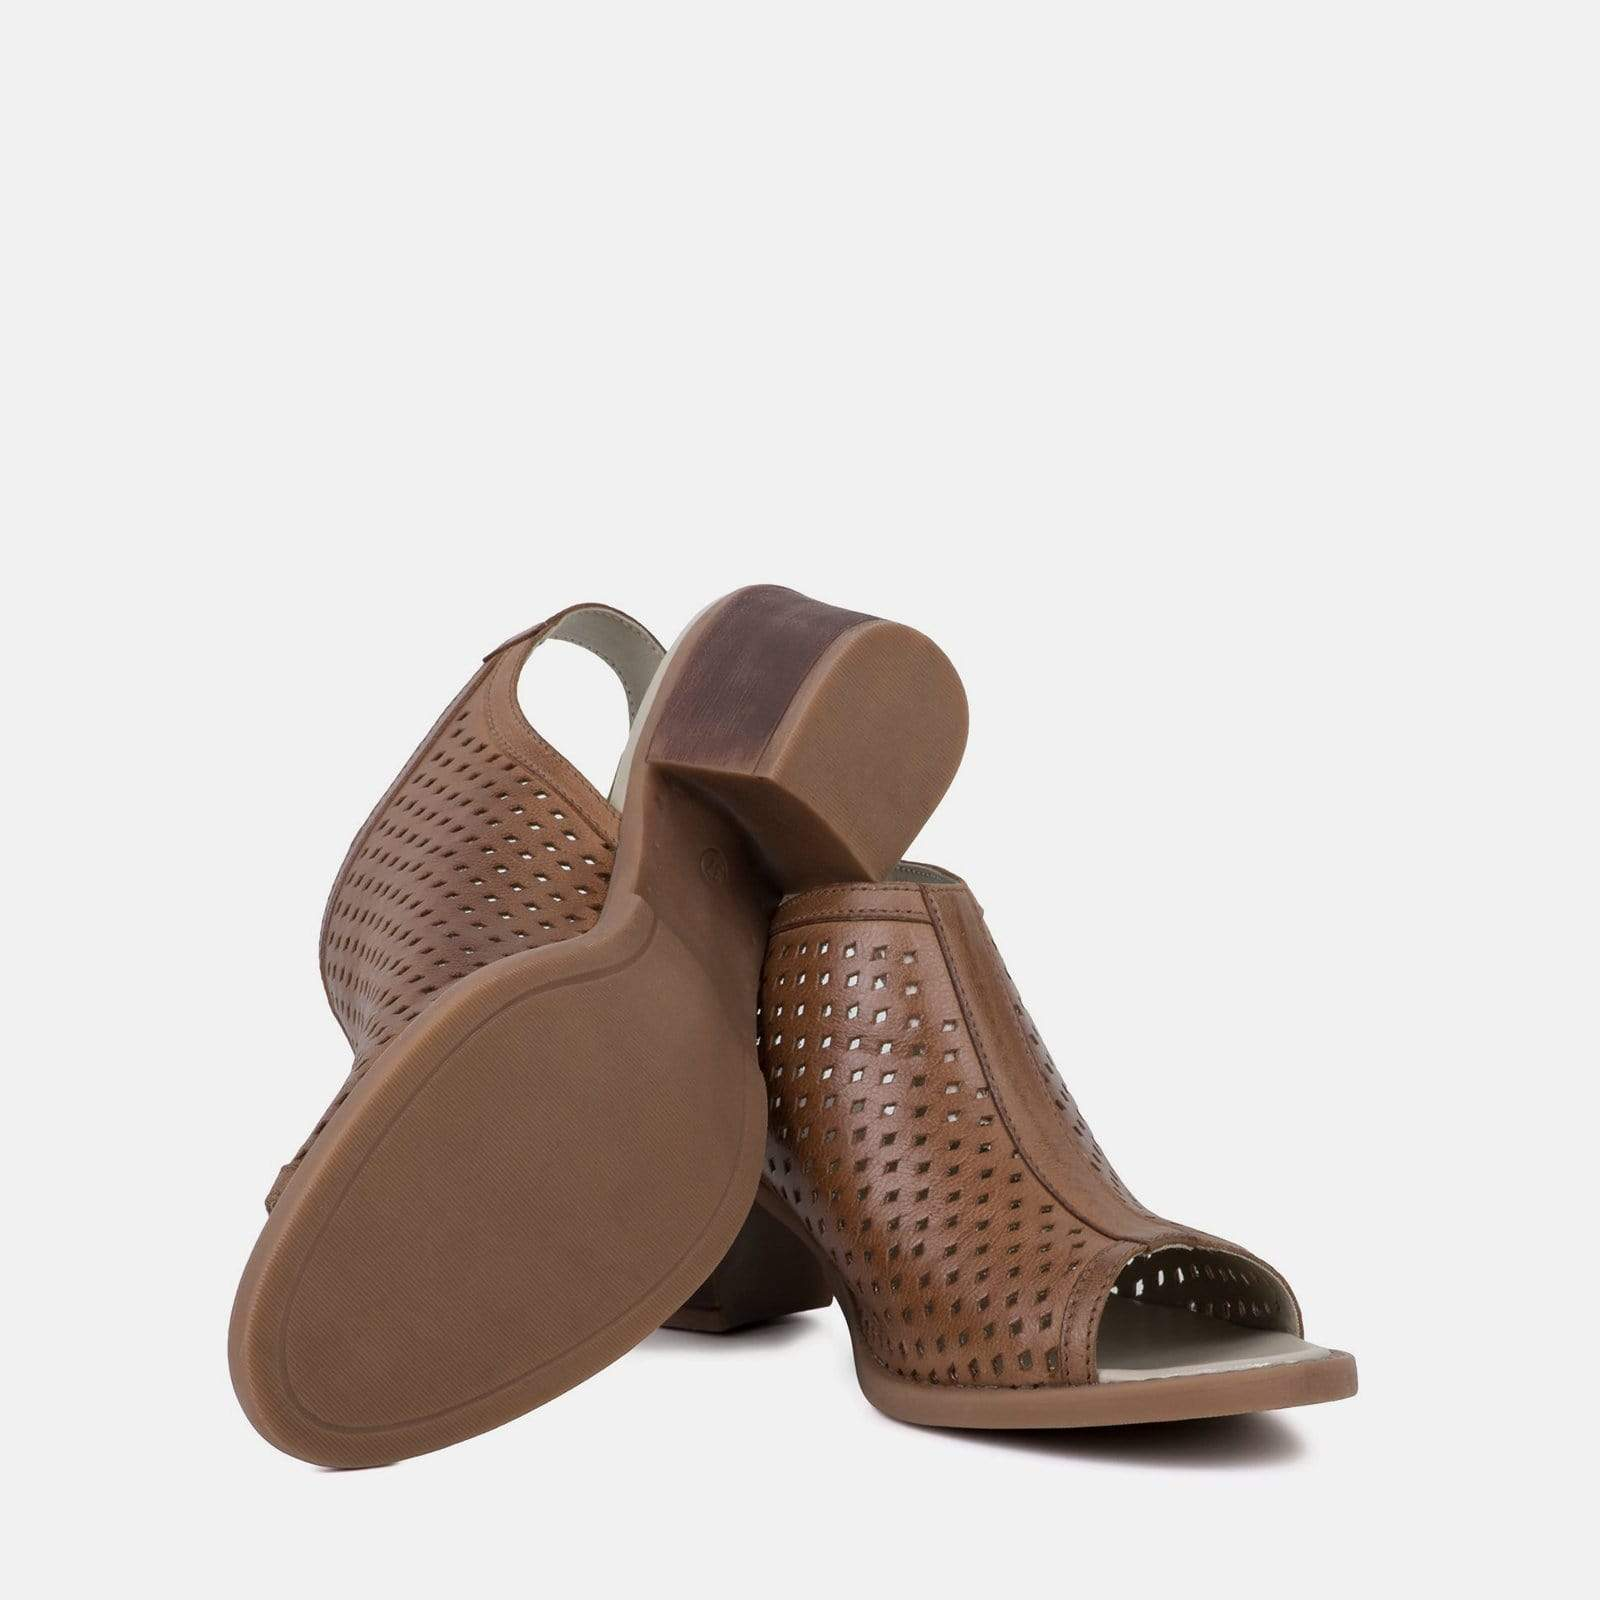 MILANO TAN LEATHER PEEP TOE SANDAL